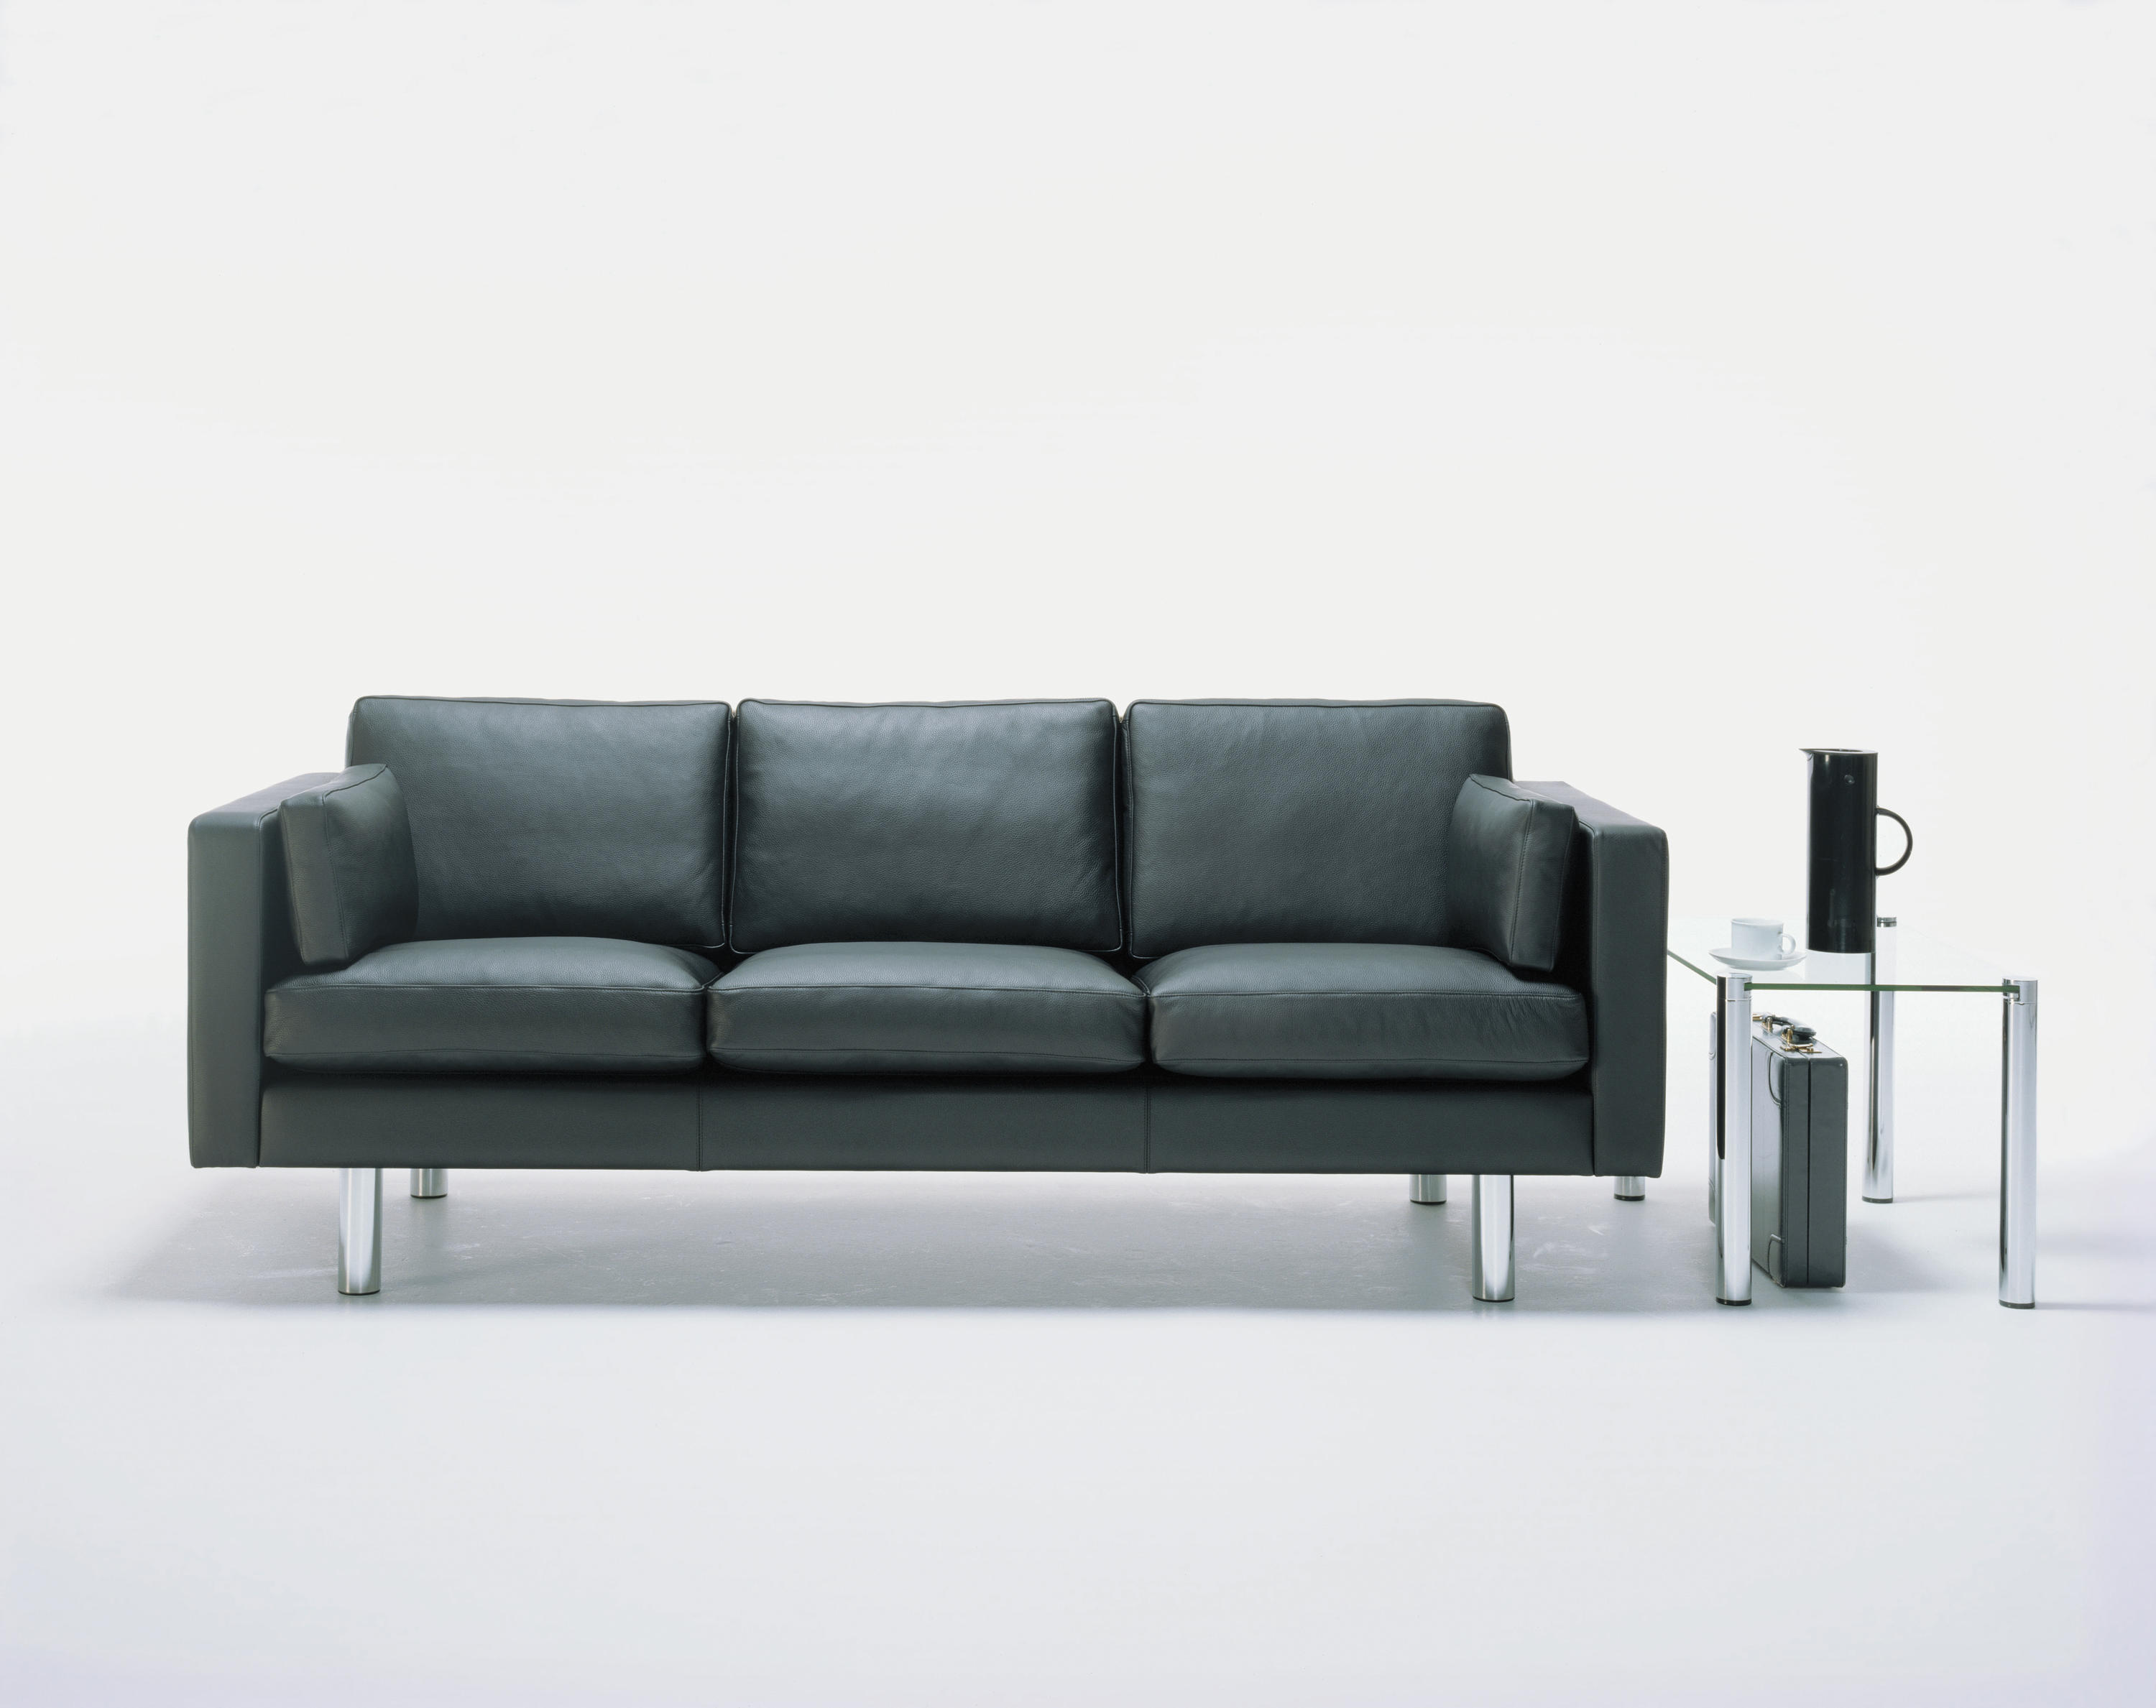 HJM SOFLEX 120 SOFA Lounge Sofas From Stouby Architonic